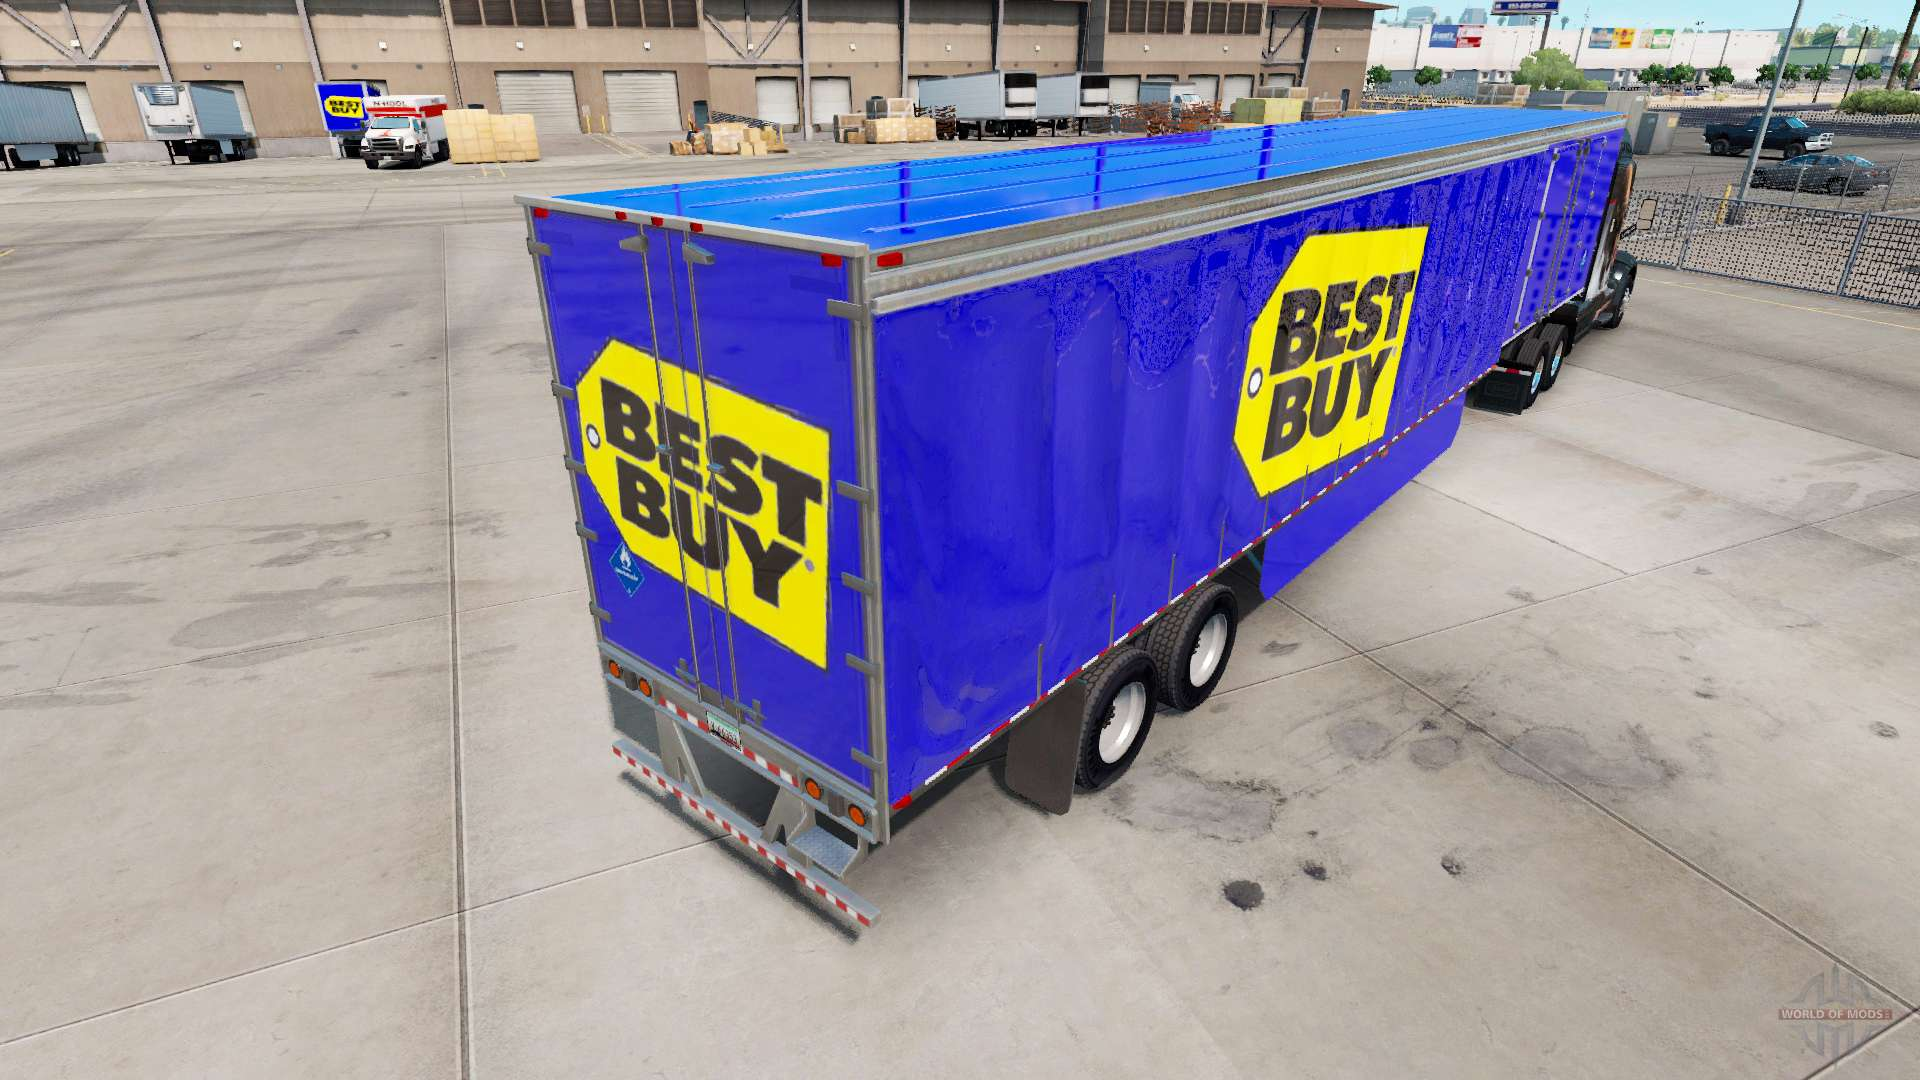 Skin Best Buy On Curtain Semi-trailer For American Truck